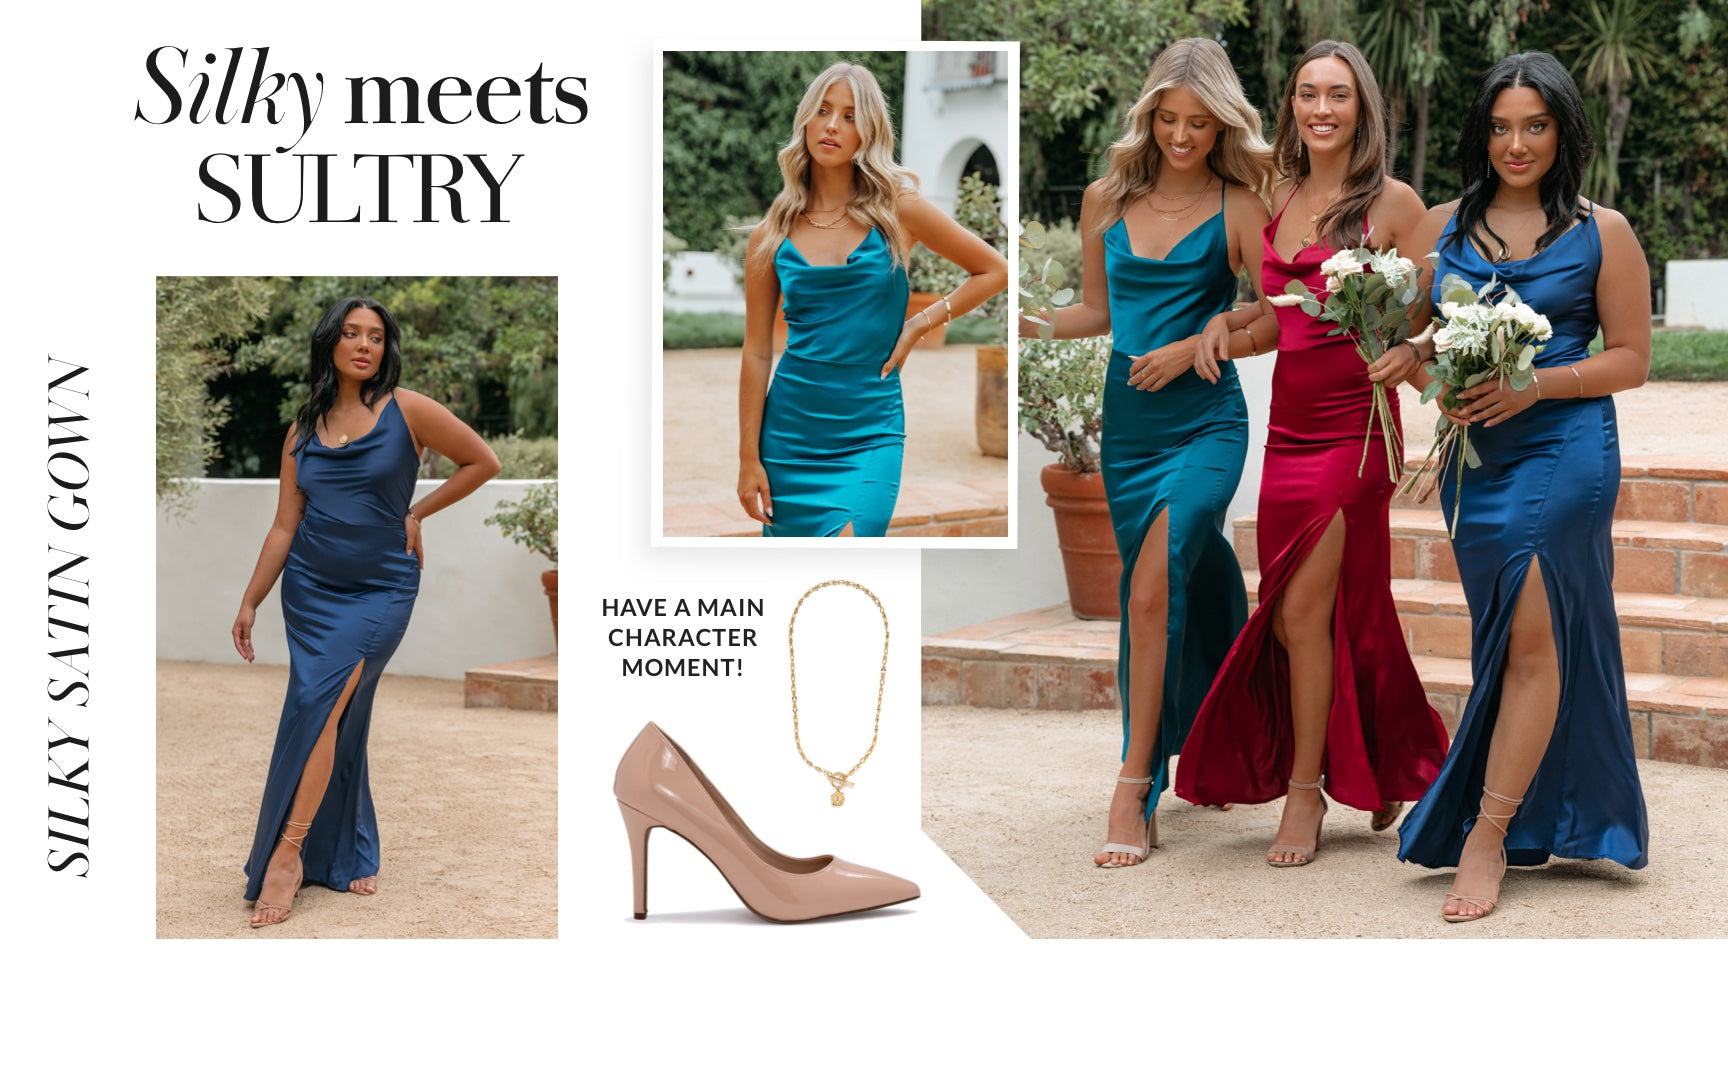 The easiest way to have a main character moment while you lock eyes with someone on the dance floor is in a floor length satin gown! This chic piece is fitted everywhere it needs to be, complete with a leg slit to show off your perfectly paired heels. Can't pick the perfect bridesmaids dress? Have your group find any silk maxi in your desired shade. Shop Silk Maxis